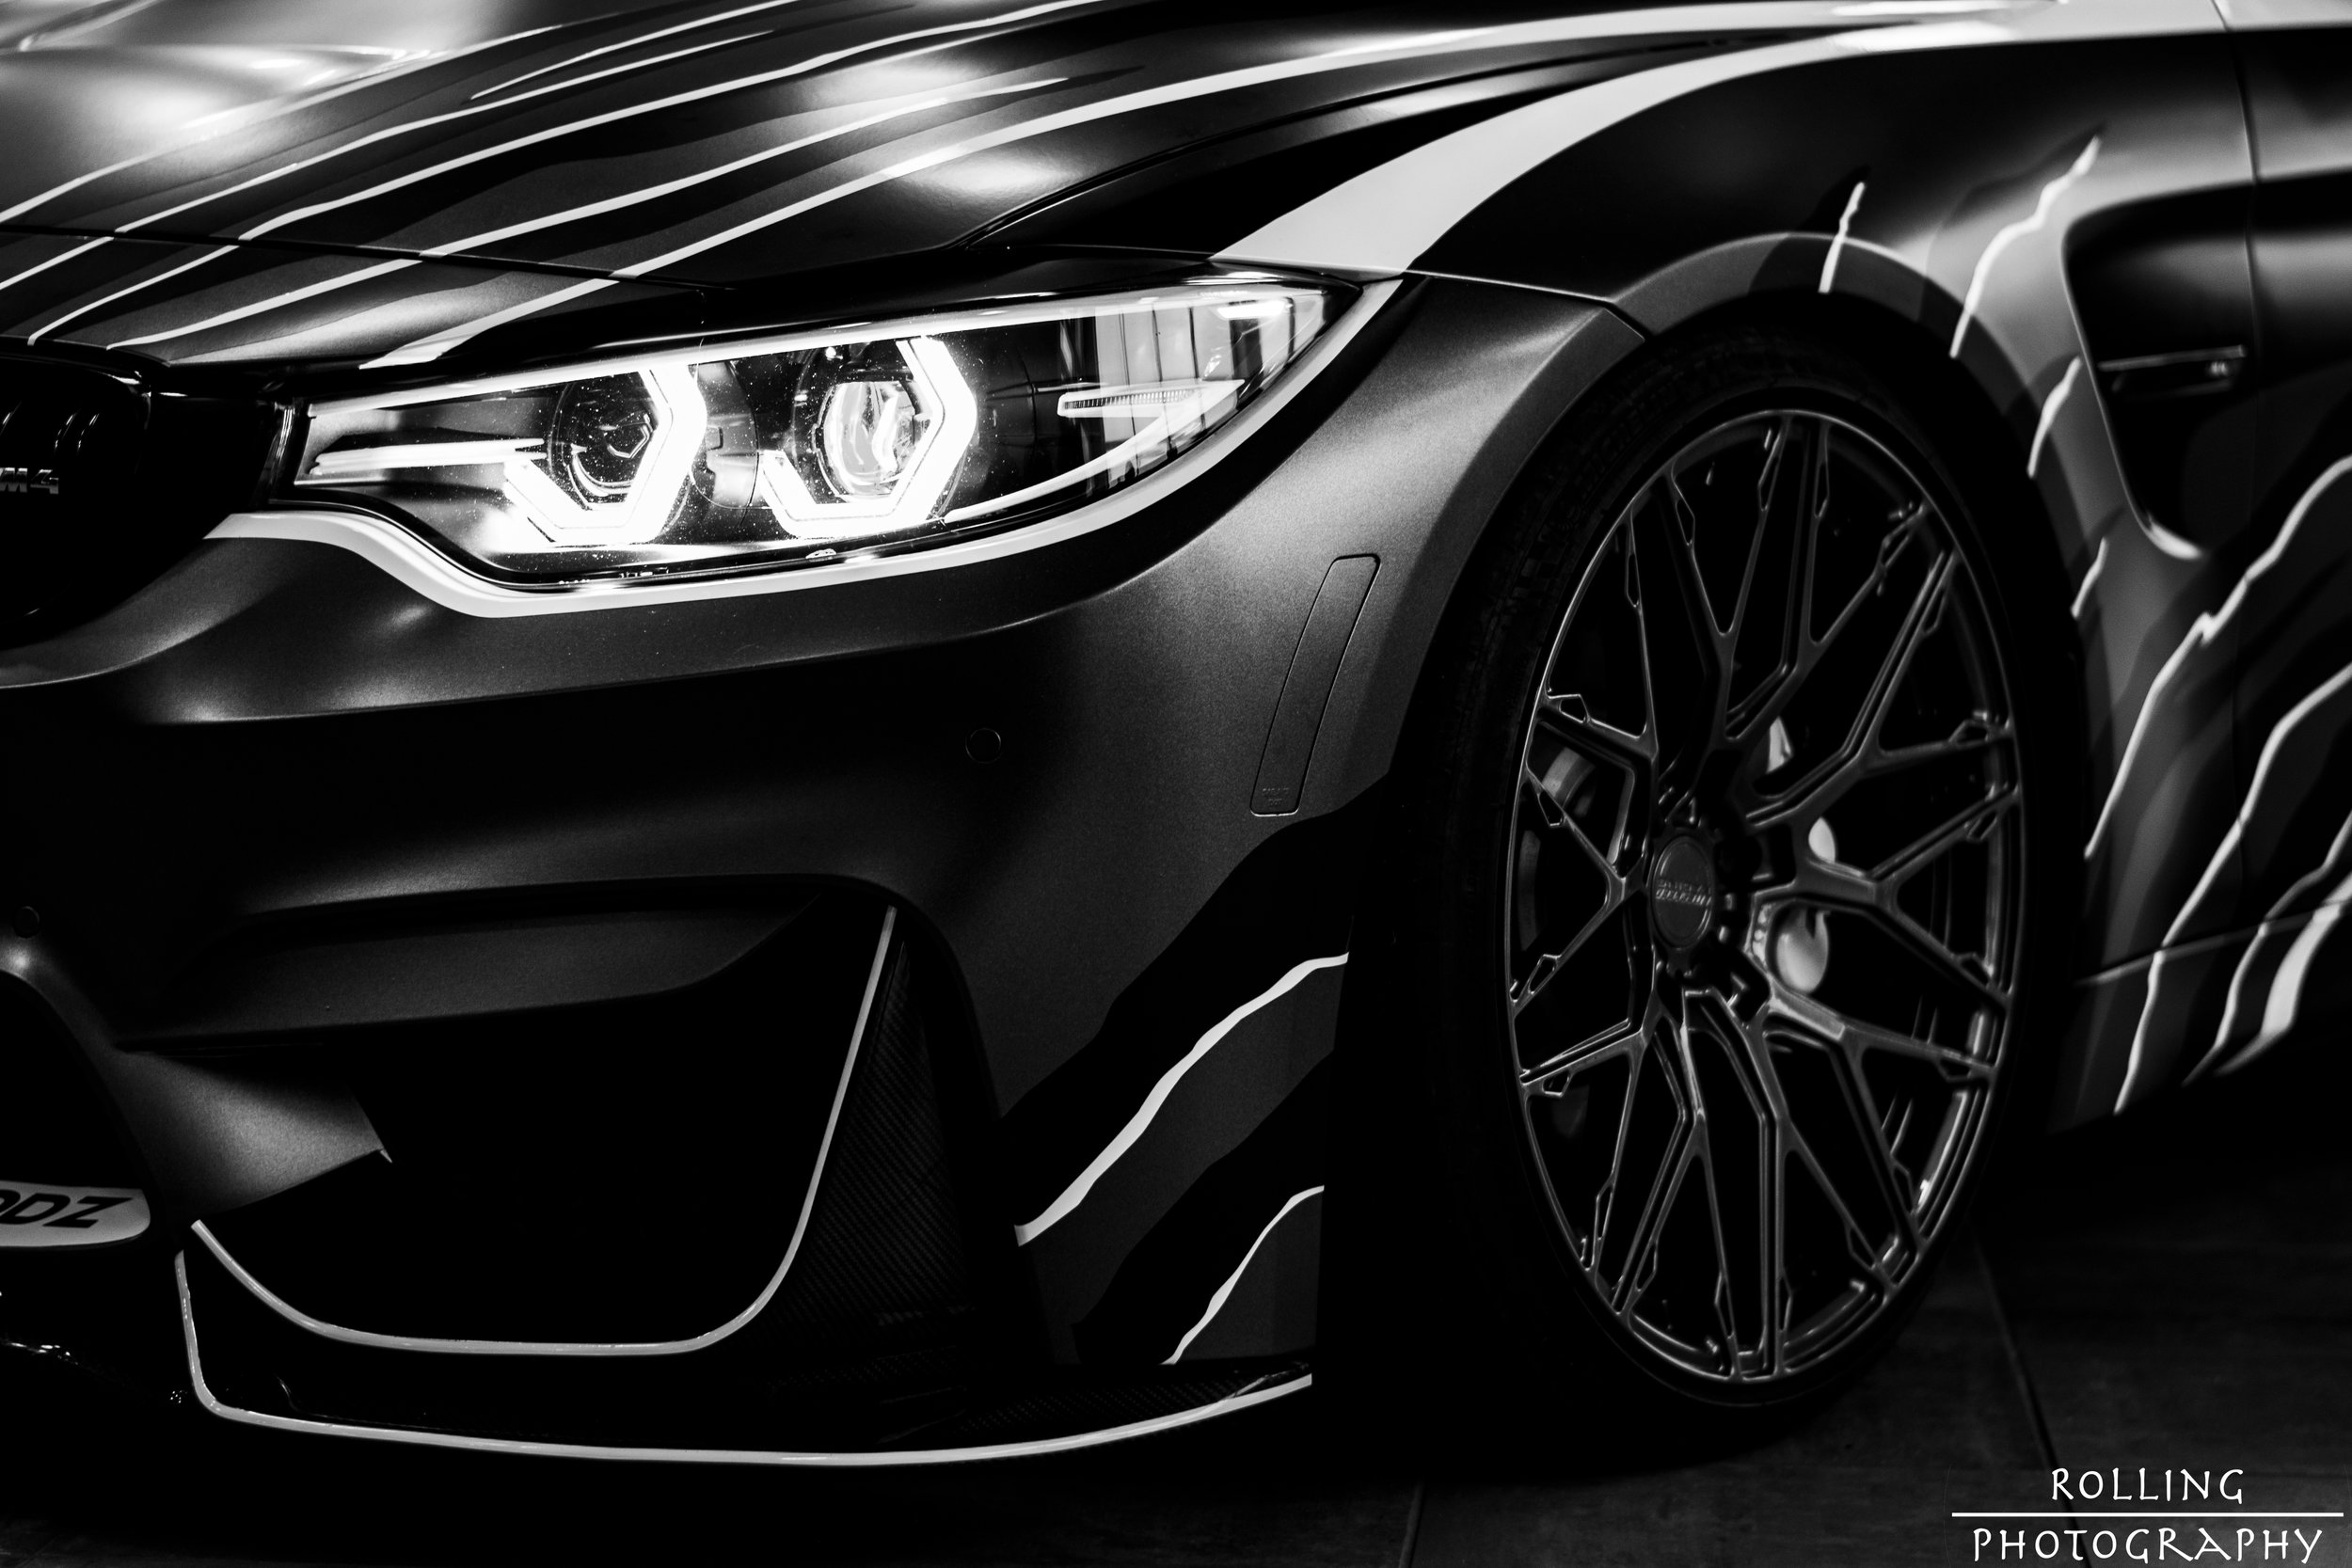 LightningM4 Left Headlight Low Angle.jpg